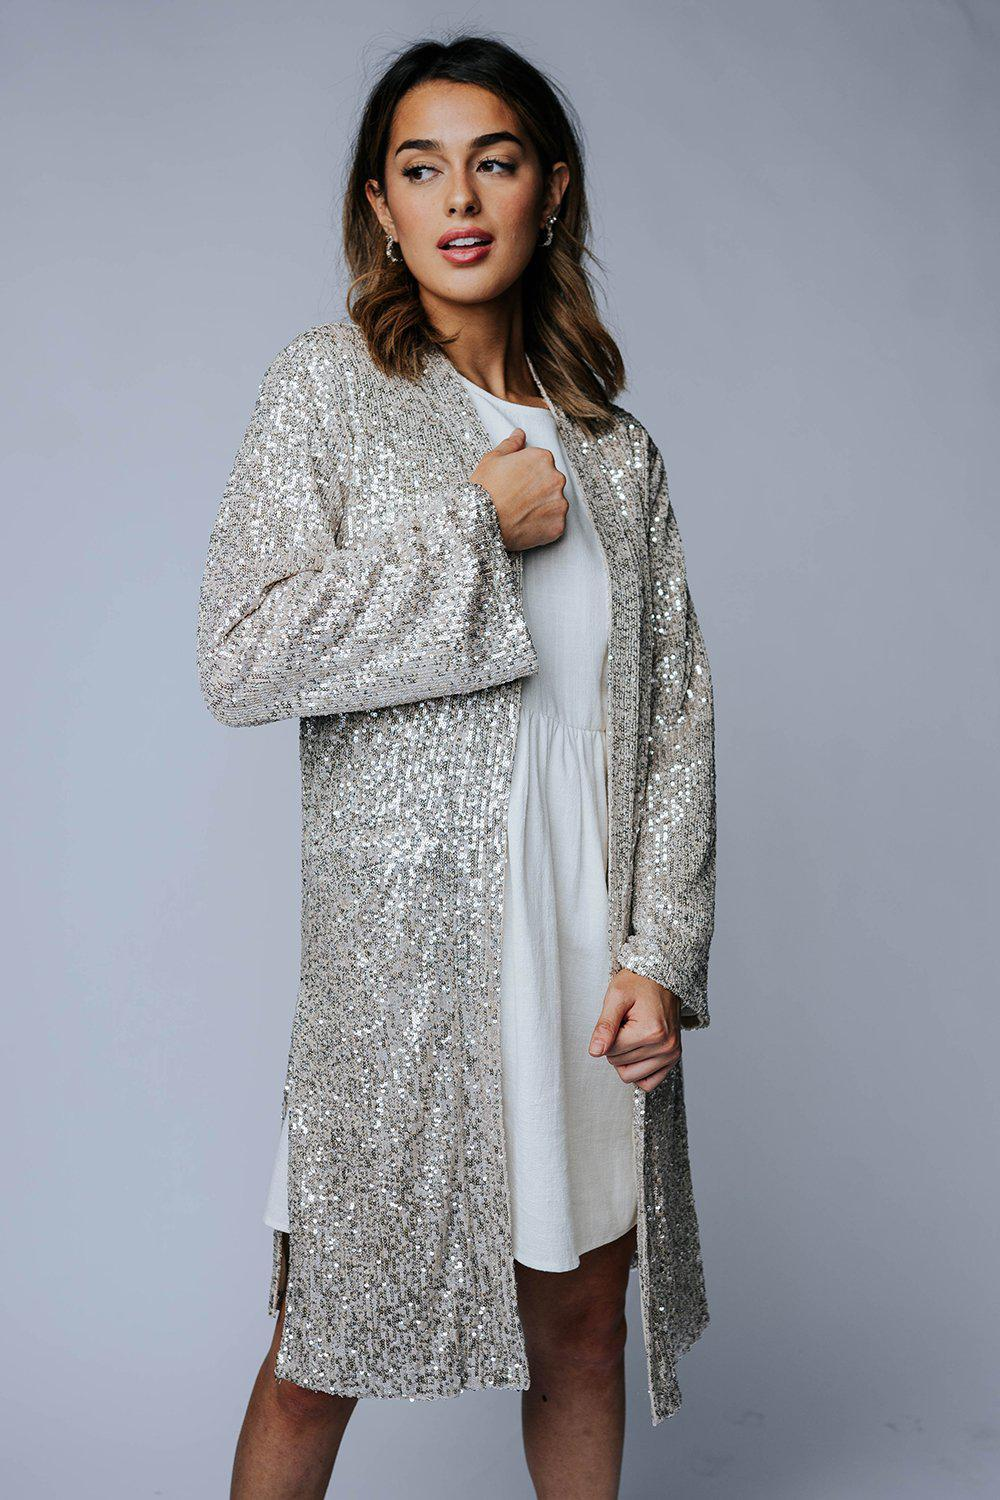 Fool's Gold Sequin Cardigan-Top-By Together-S-Clad & Cloth